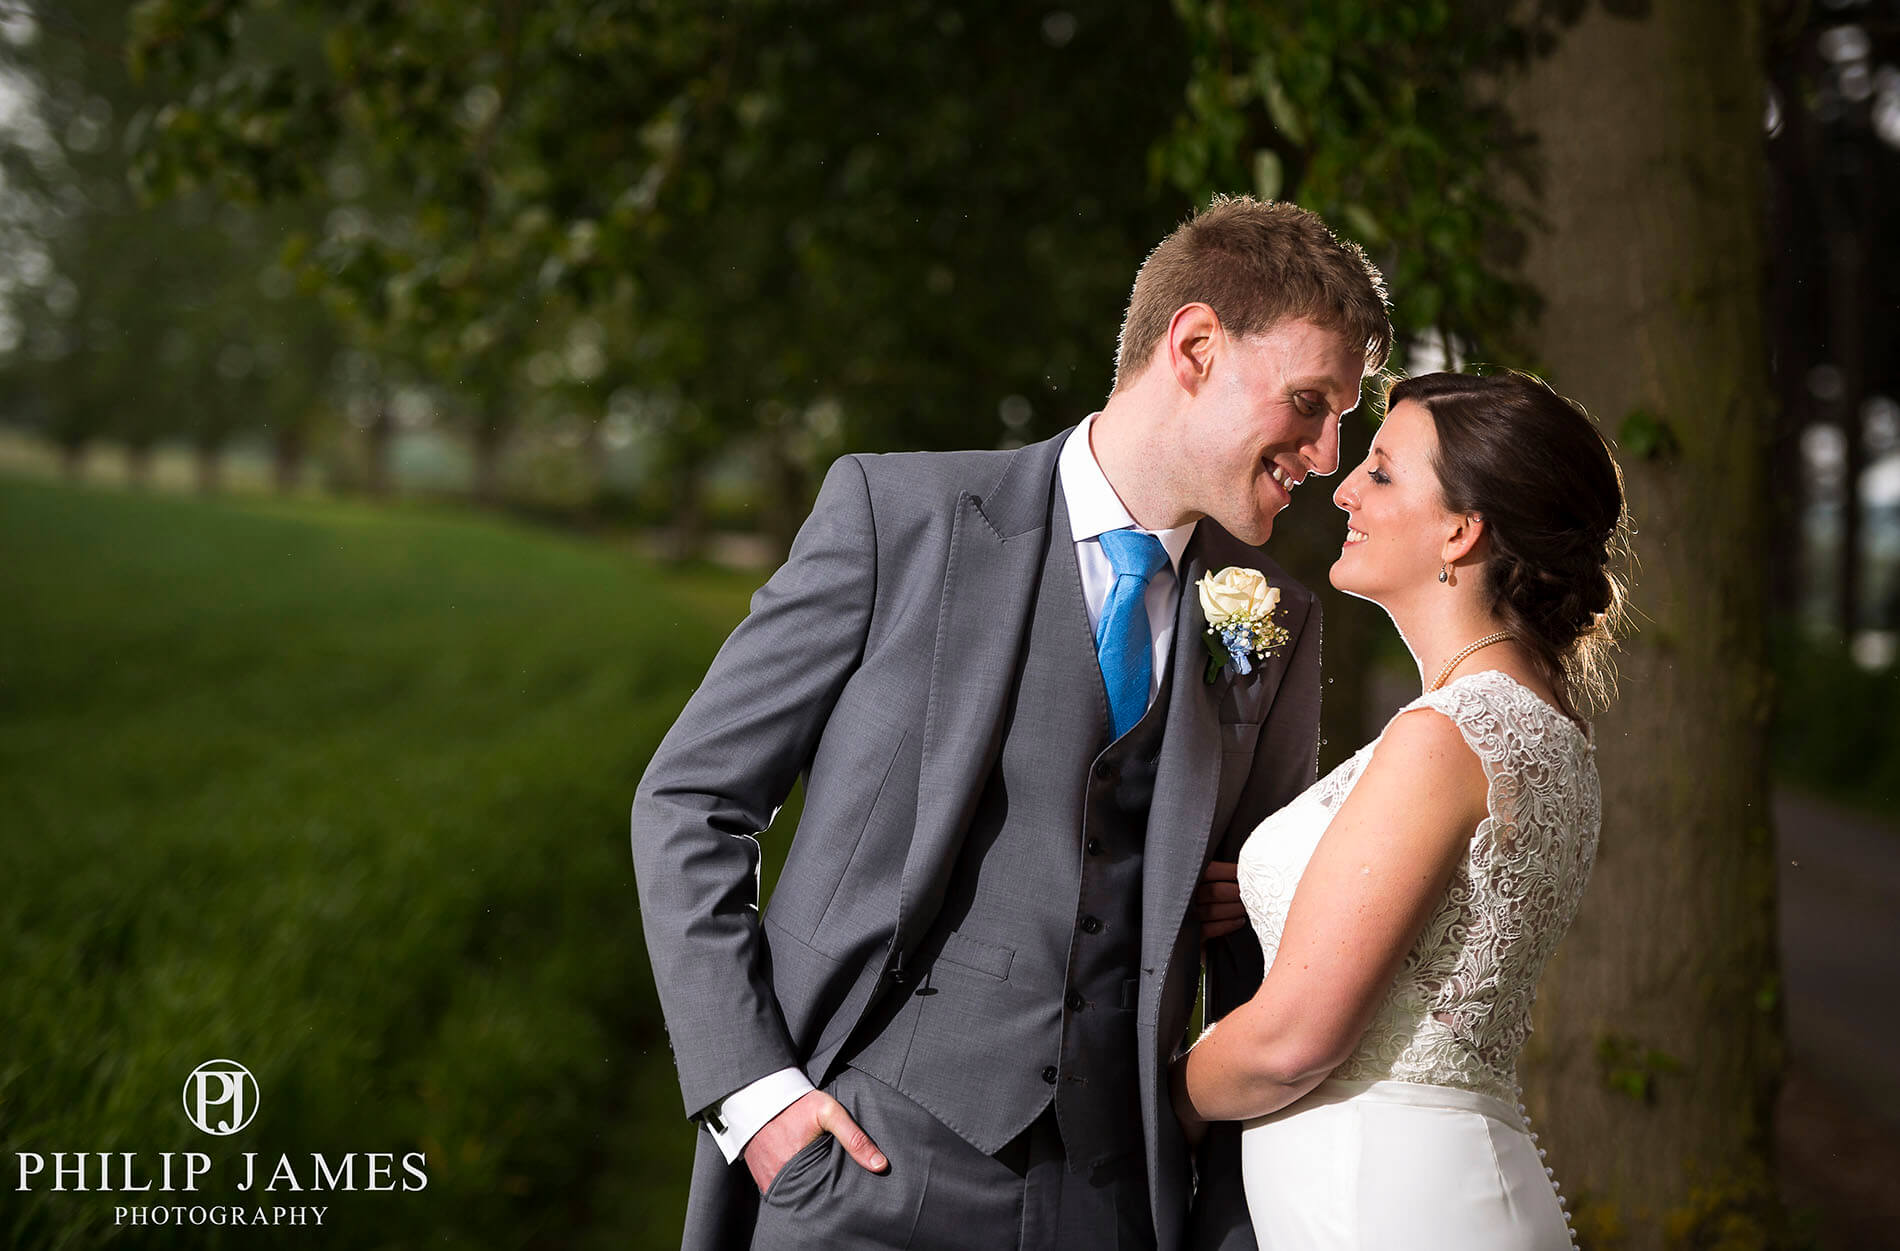 Birmingham Wedding Photographer - Philip James Photography based in Solihull (4 of 68)